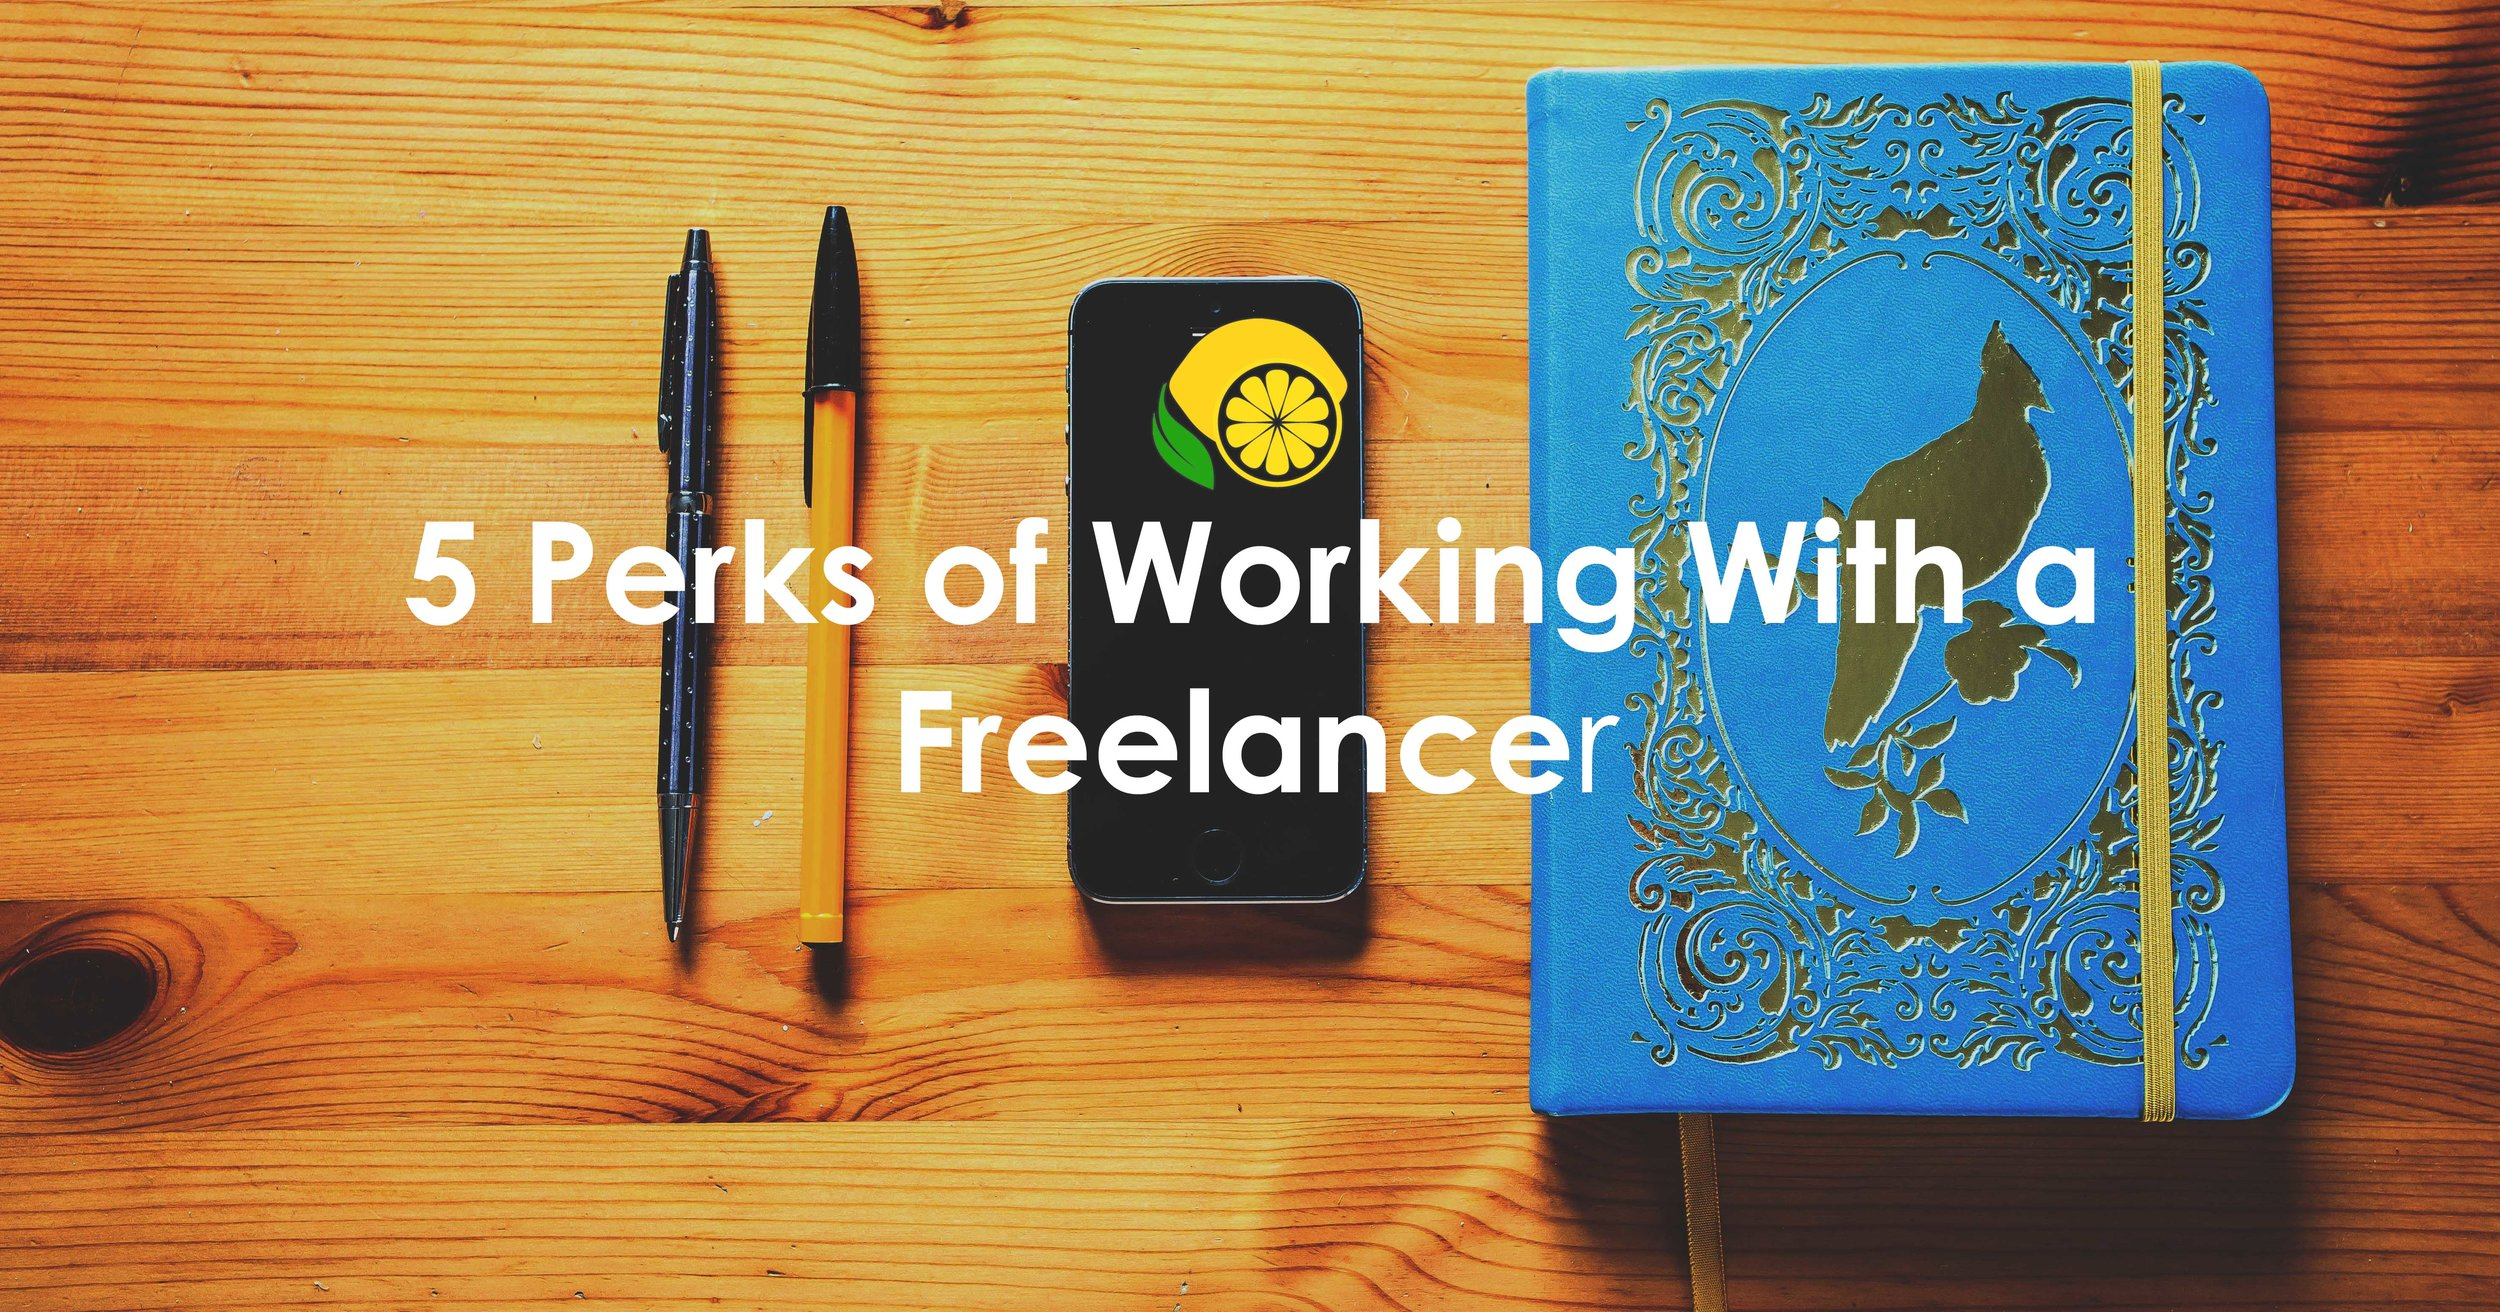 5 Perks of Working with a Freelancer